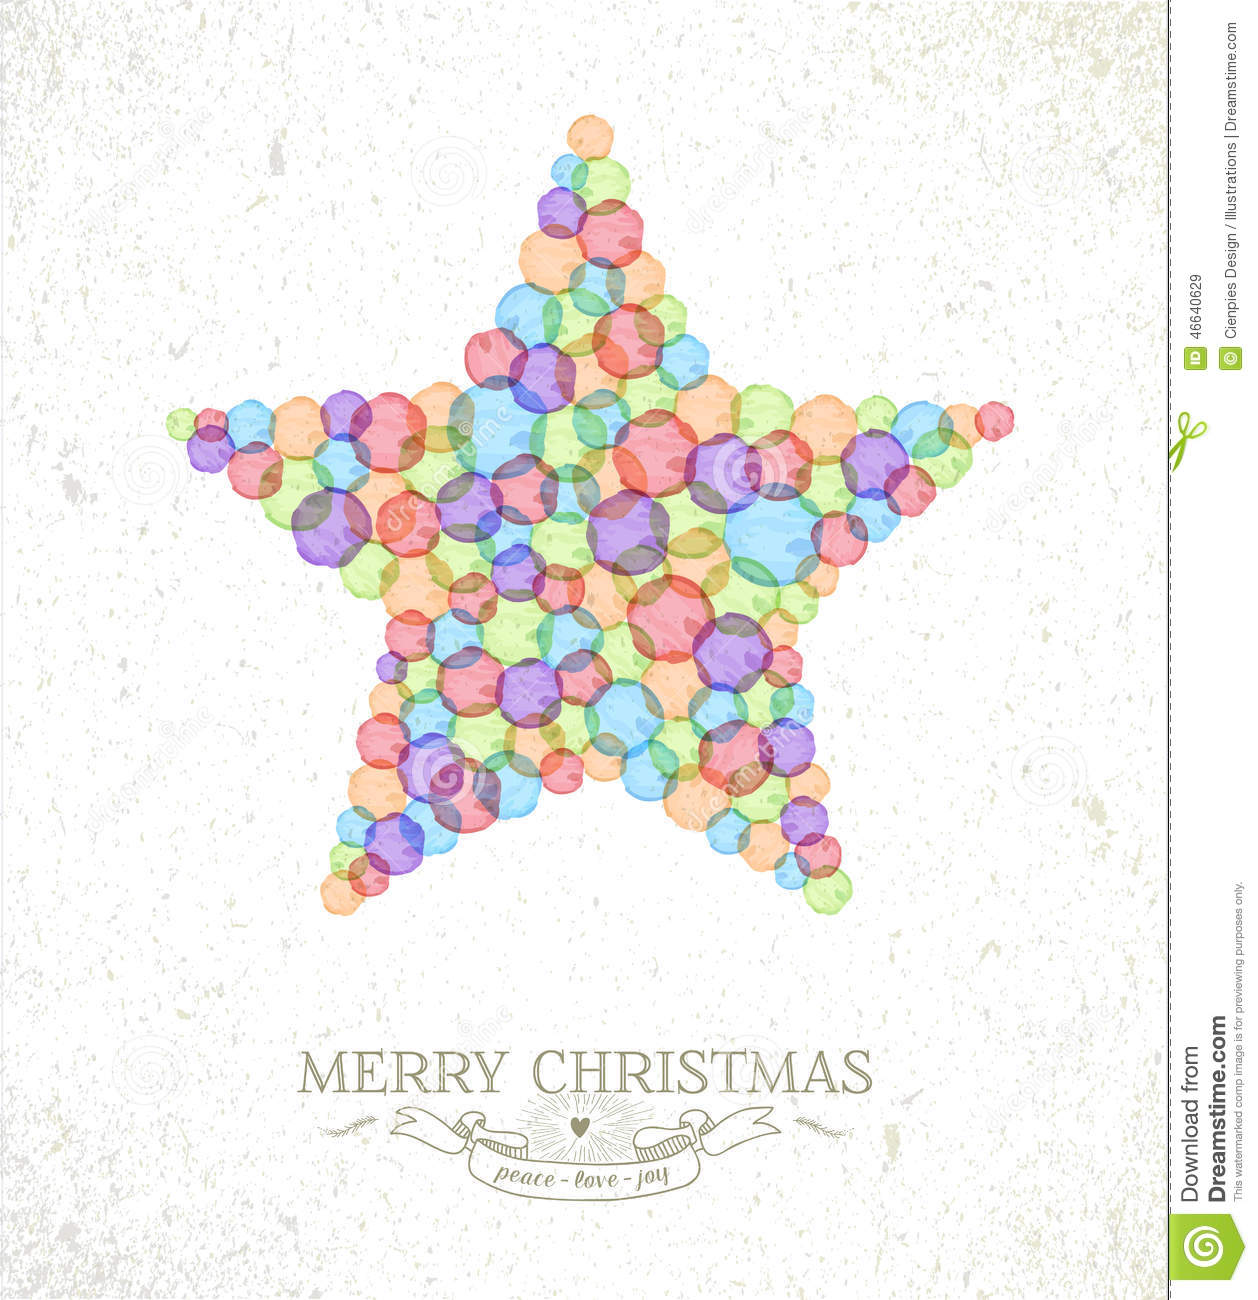 Merry Christmas Watercolor Star Illustration Stock Vector - Image ...